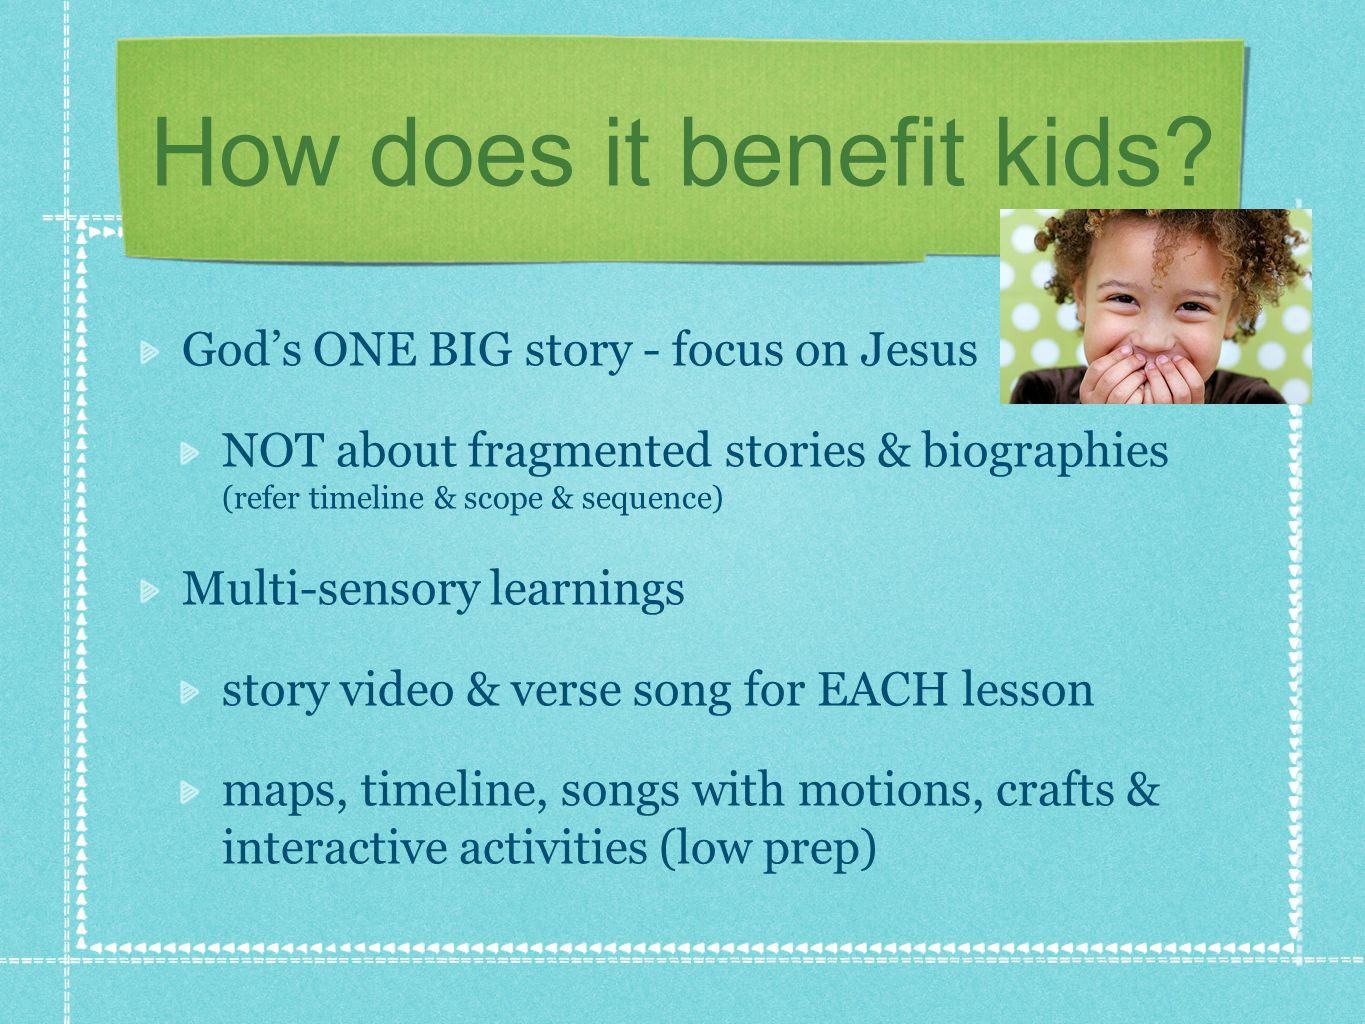 How does it benefit kids